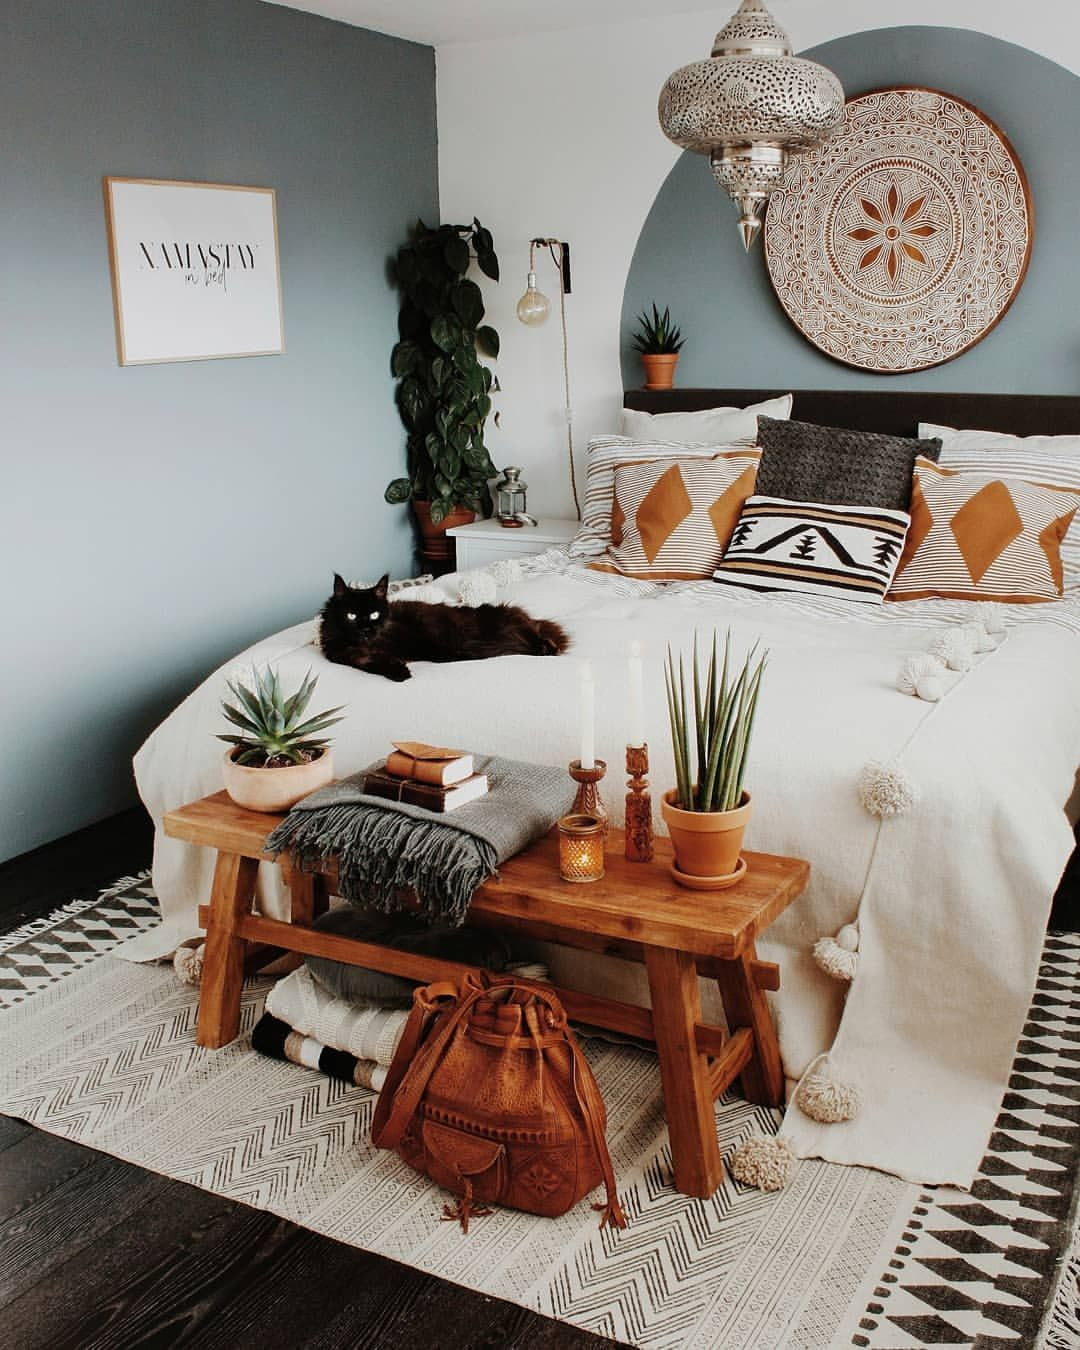 More information also what you need to know about home decor ideas diy apartments small rh pinterest